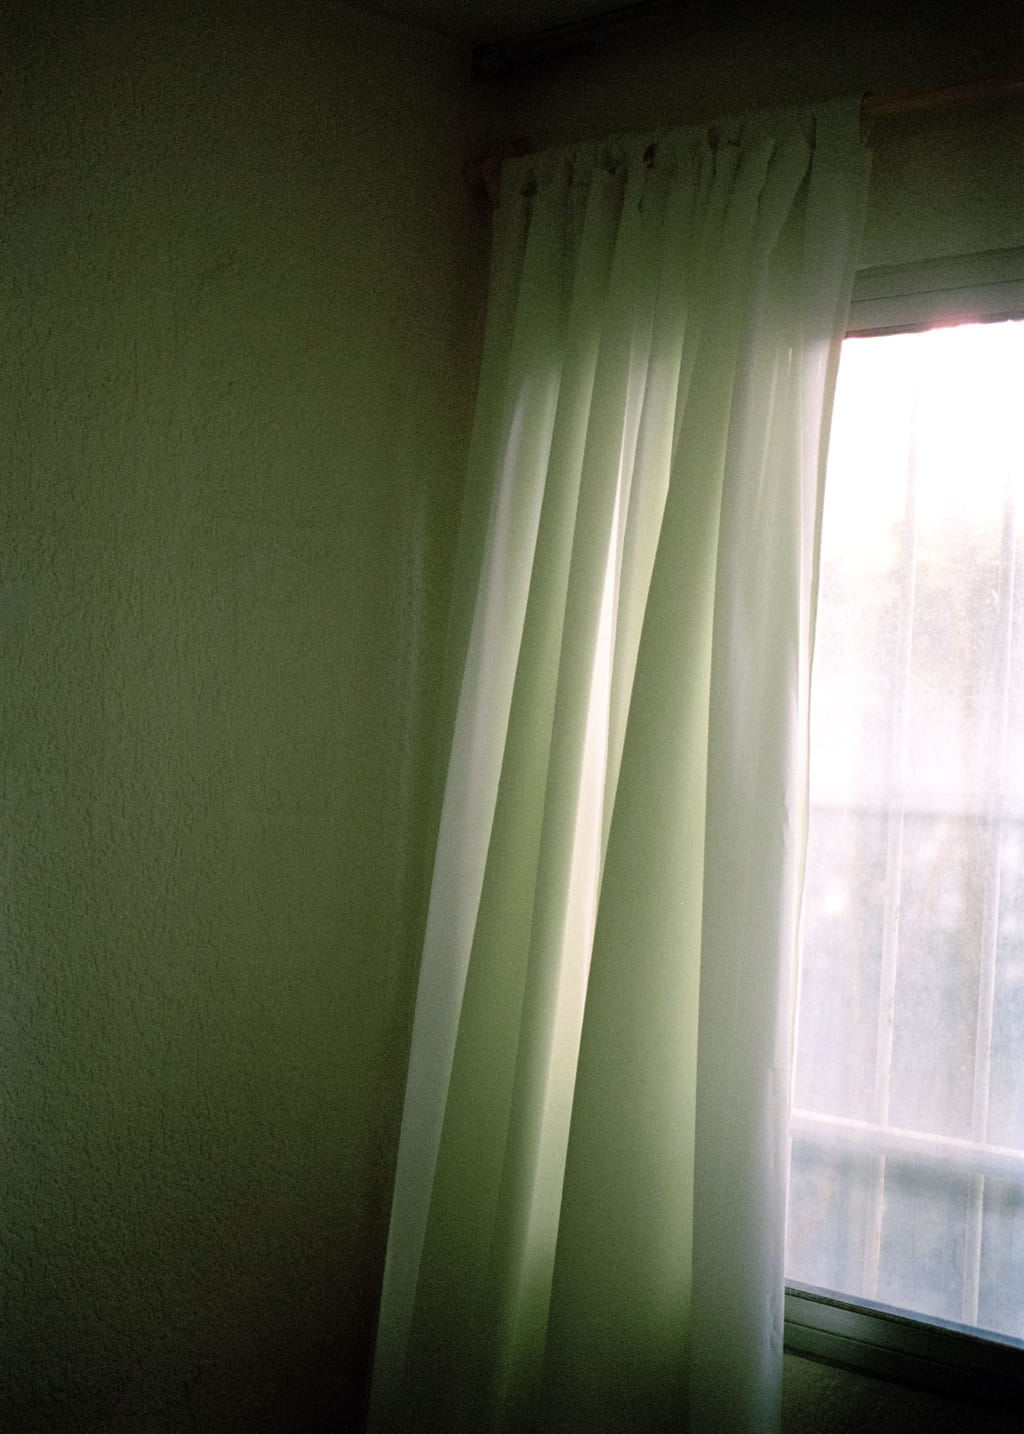 Photo of a closed window with flowing curtains and a wall beside it, with a greenish light around